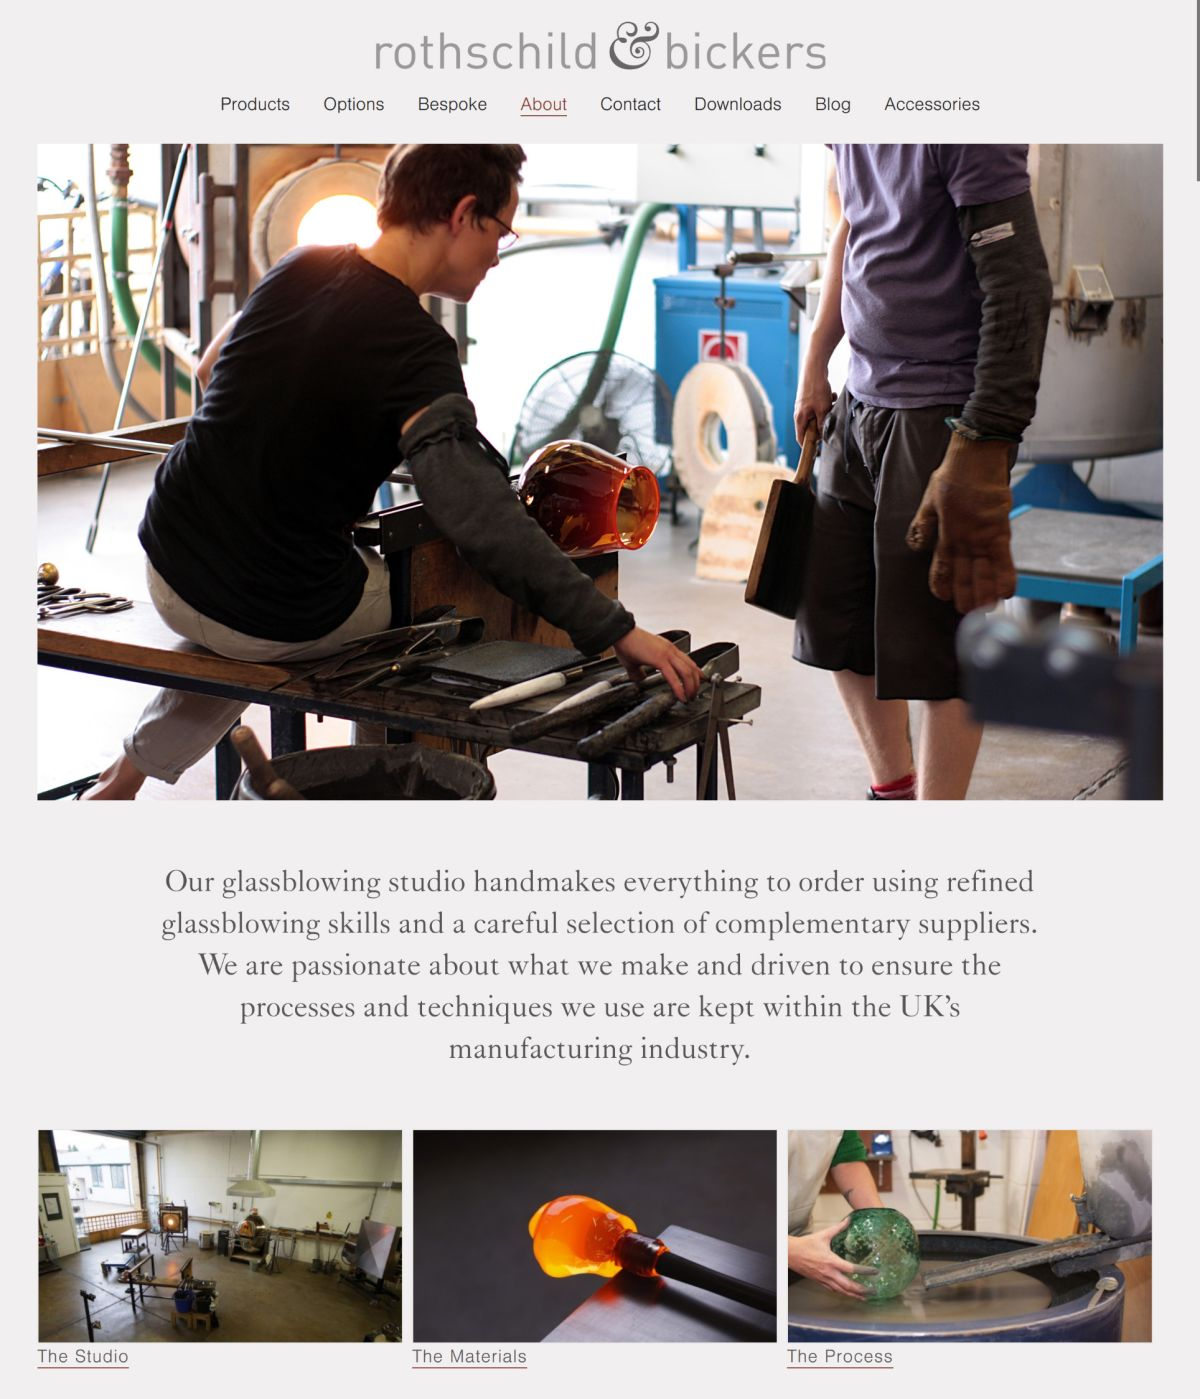 Screenshot of glassblowing studio Rothschild & Bickers' website showing a glass shade being made